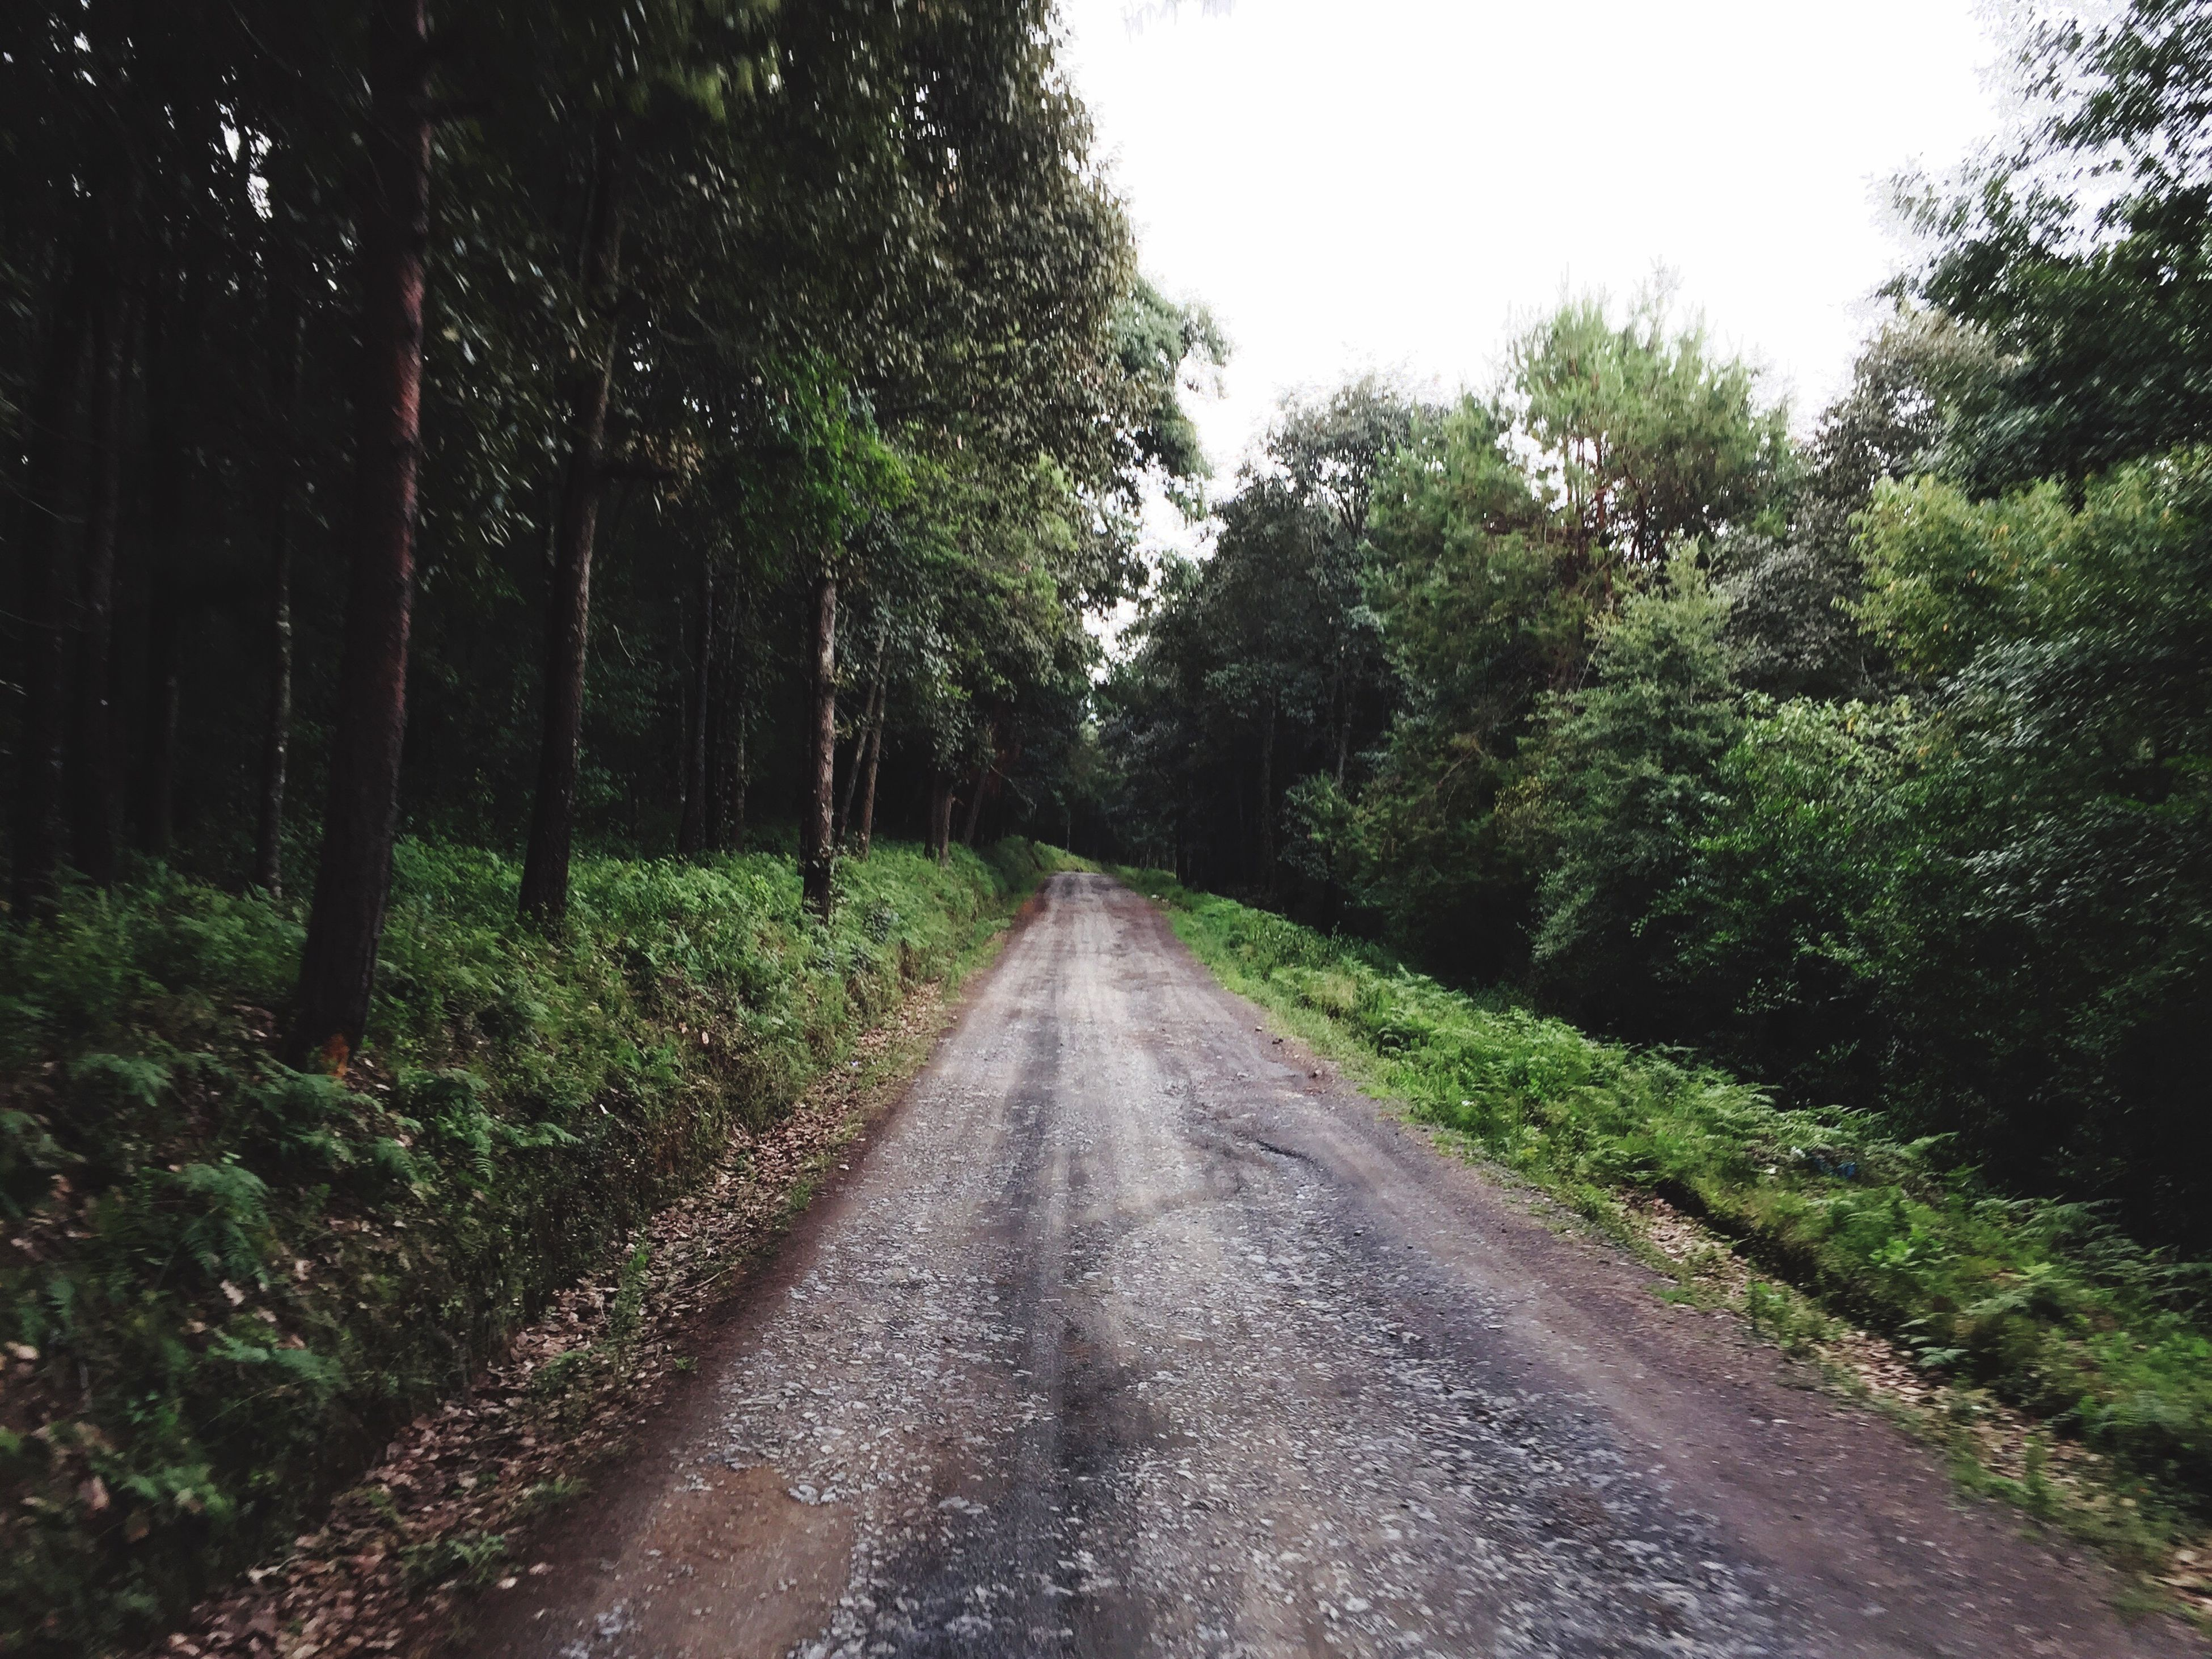 the way forward, tree, diminishing perspective, vanishing point, transportation, growth, tranquility, road, nature, forest, tranquil scene, clear sky, green color, day, beauty in nature, no people, outdoors, plant, grass, non-urban scene